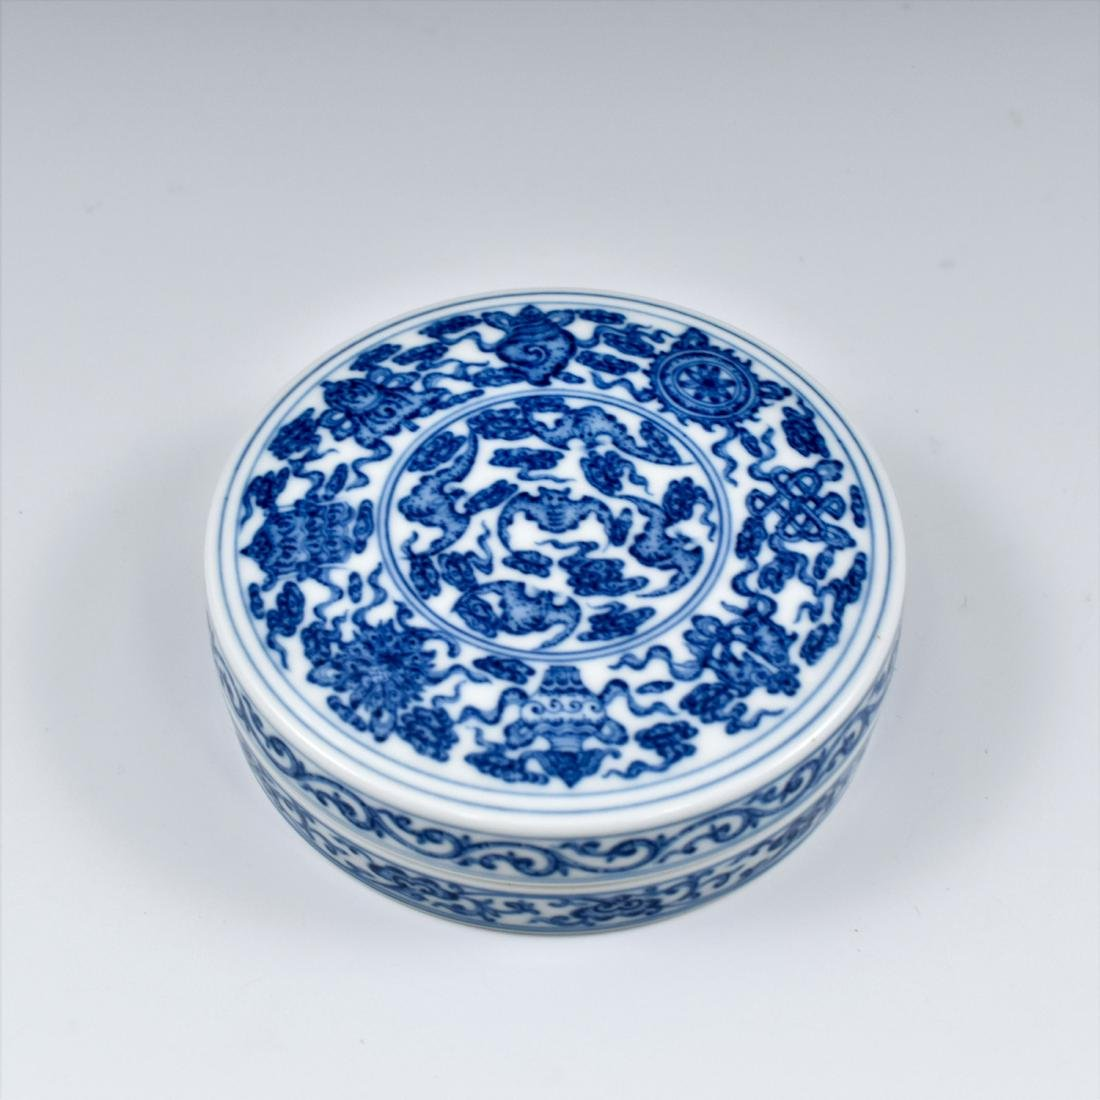 QING CHINESE PORCELAIN INK BOX